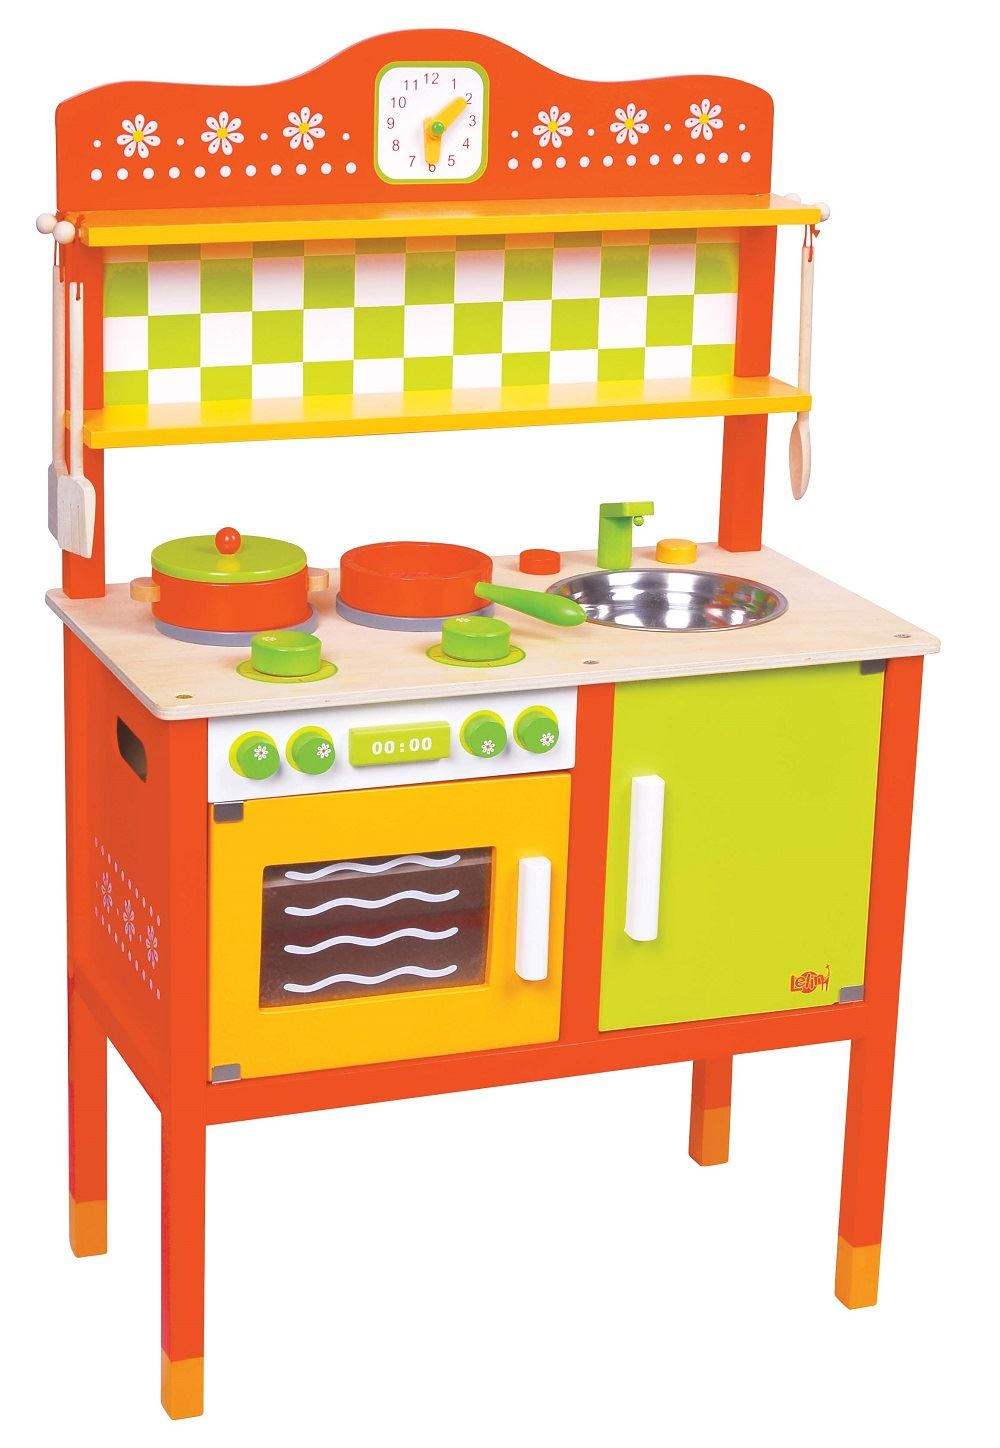 Lelin wooden childrens gourmet kitchen cooking cuisine for Cuisine wooden